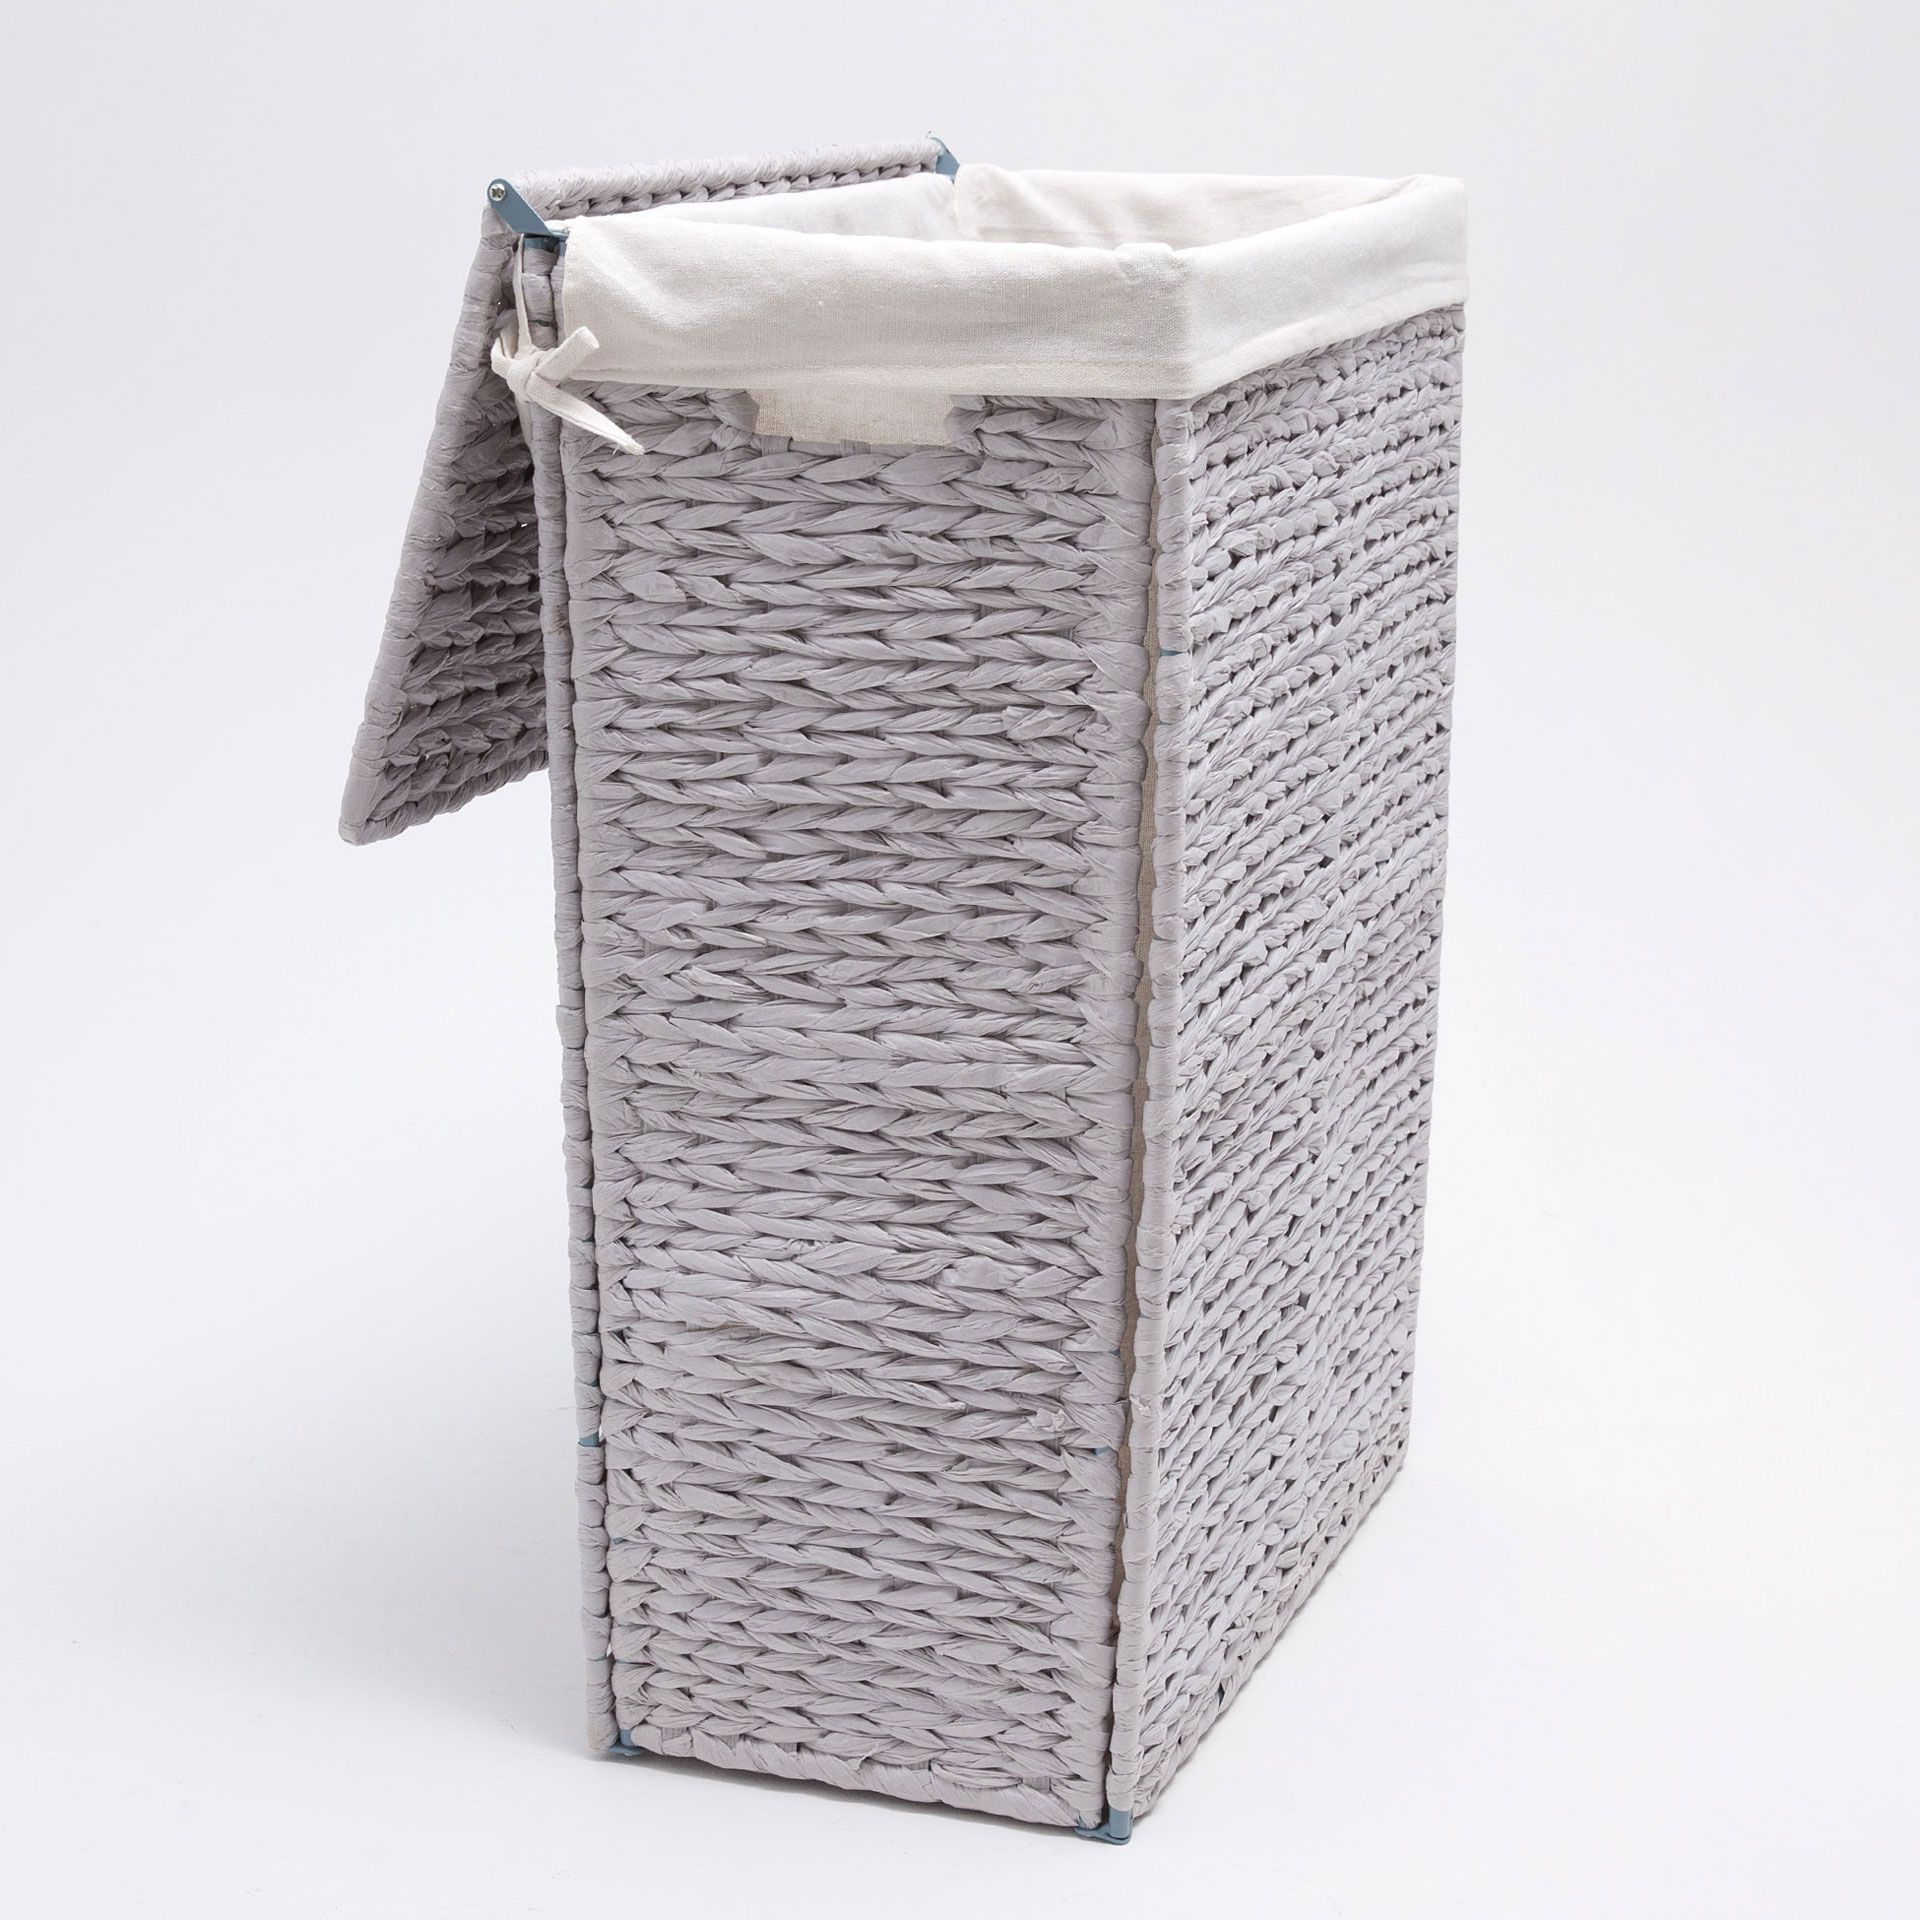 Image 6 Of The Product Light Grey Clothes Basket Grey Laundry